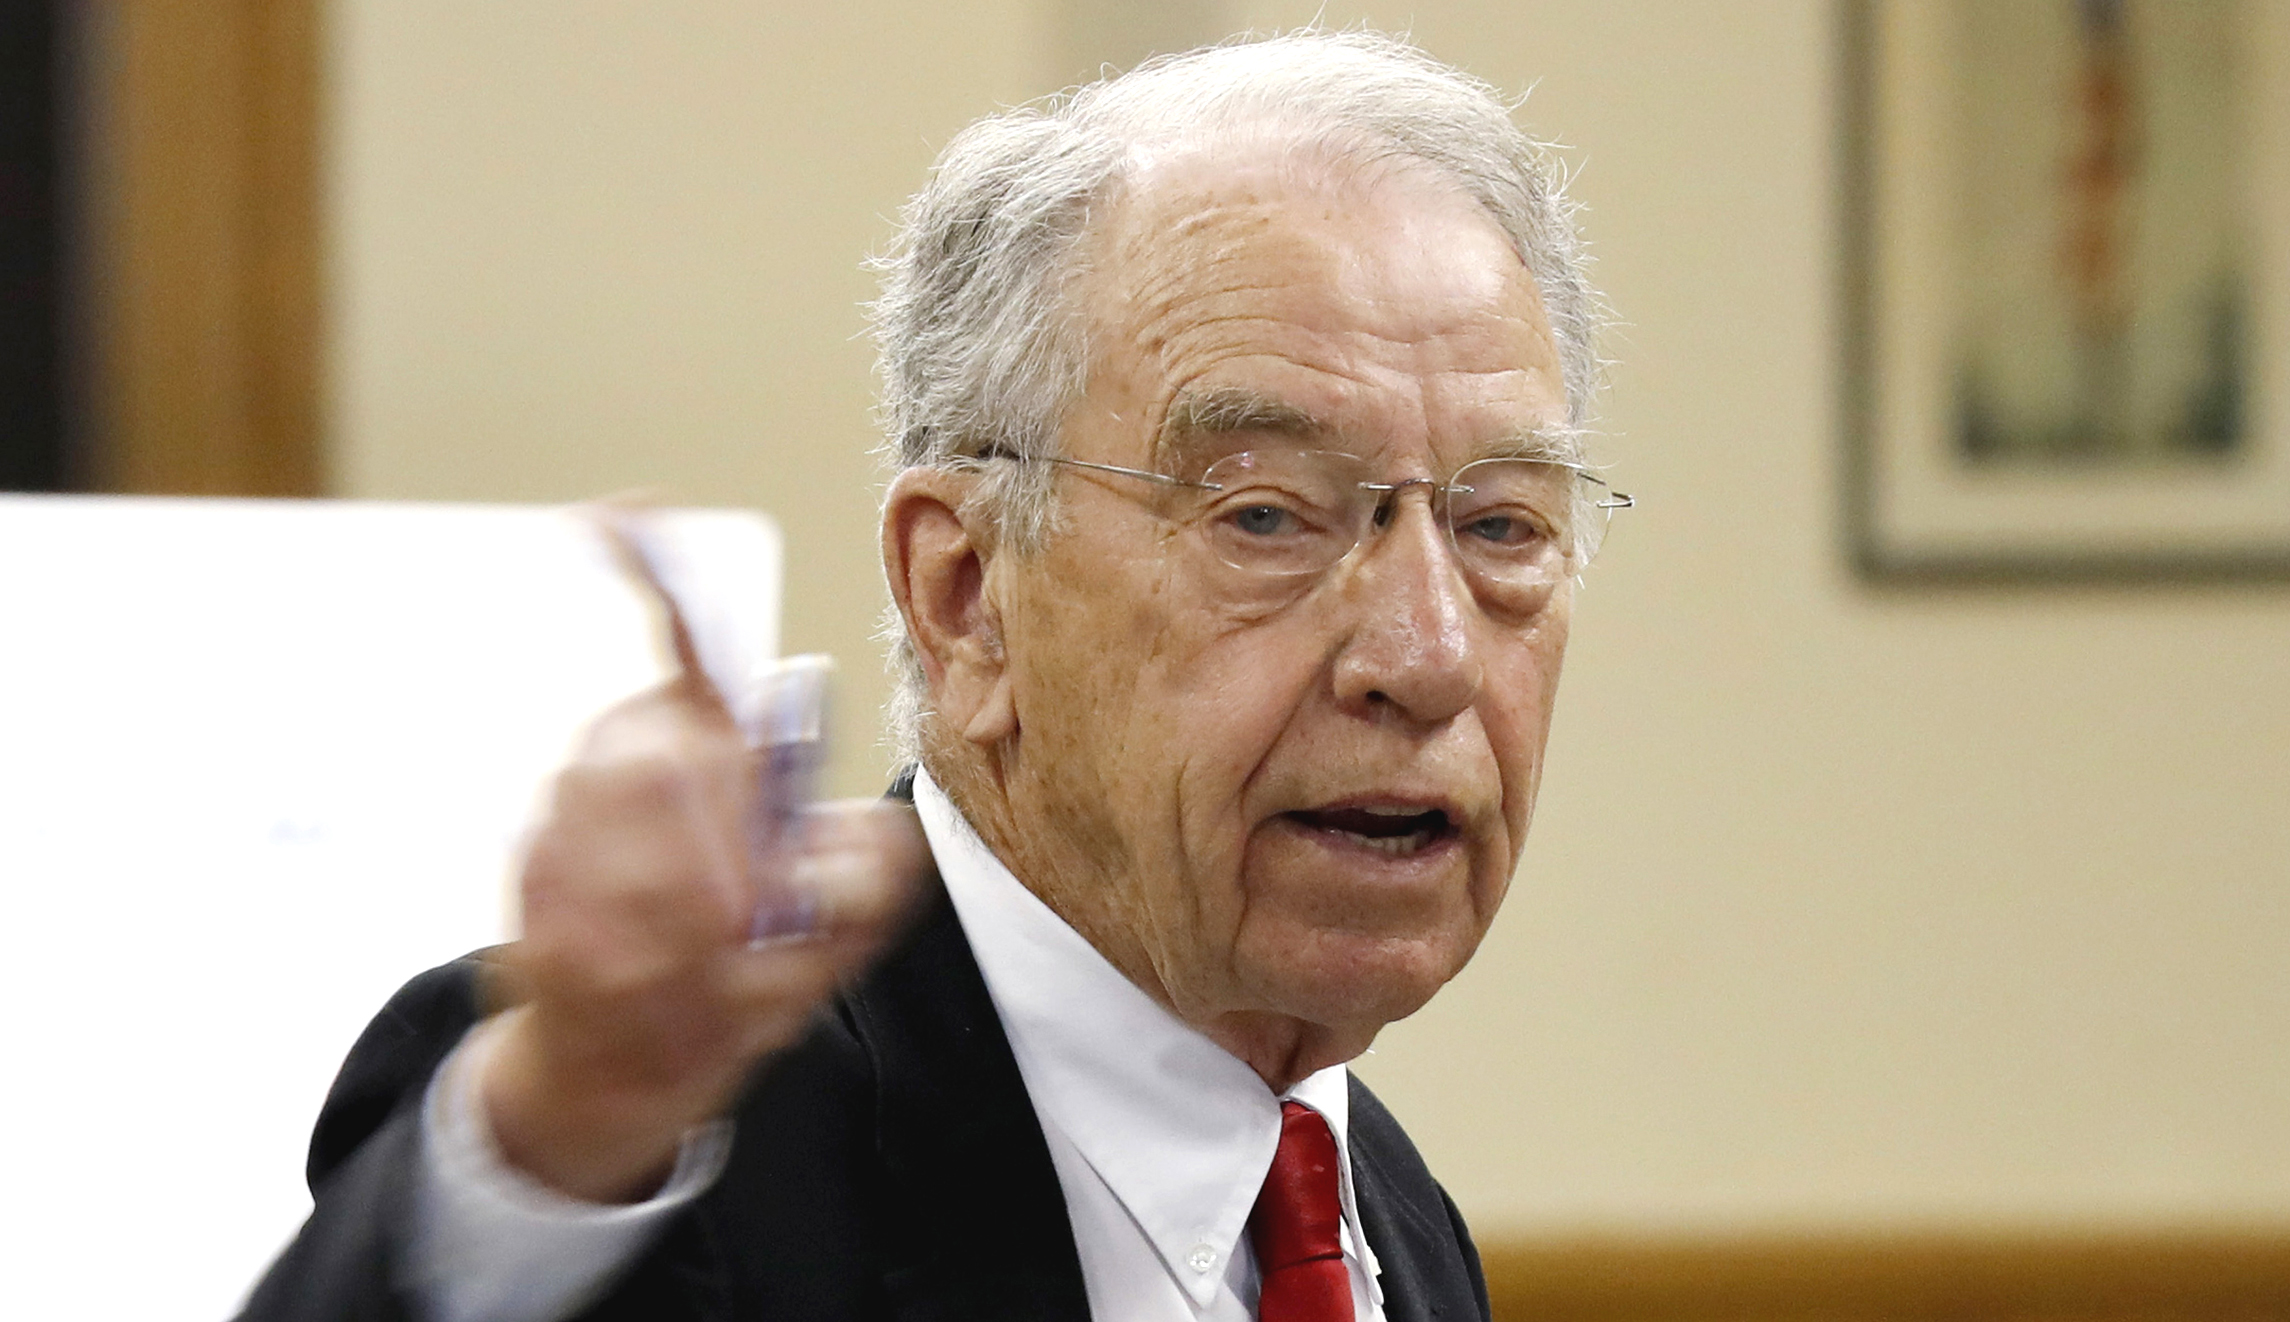 washingtonexaminer.com - Grassley points to Schumer for Kavanaugh, Ford testimony delay as Saturday deadline looms